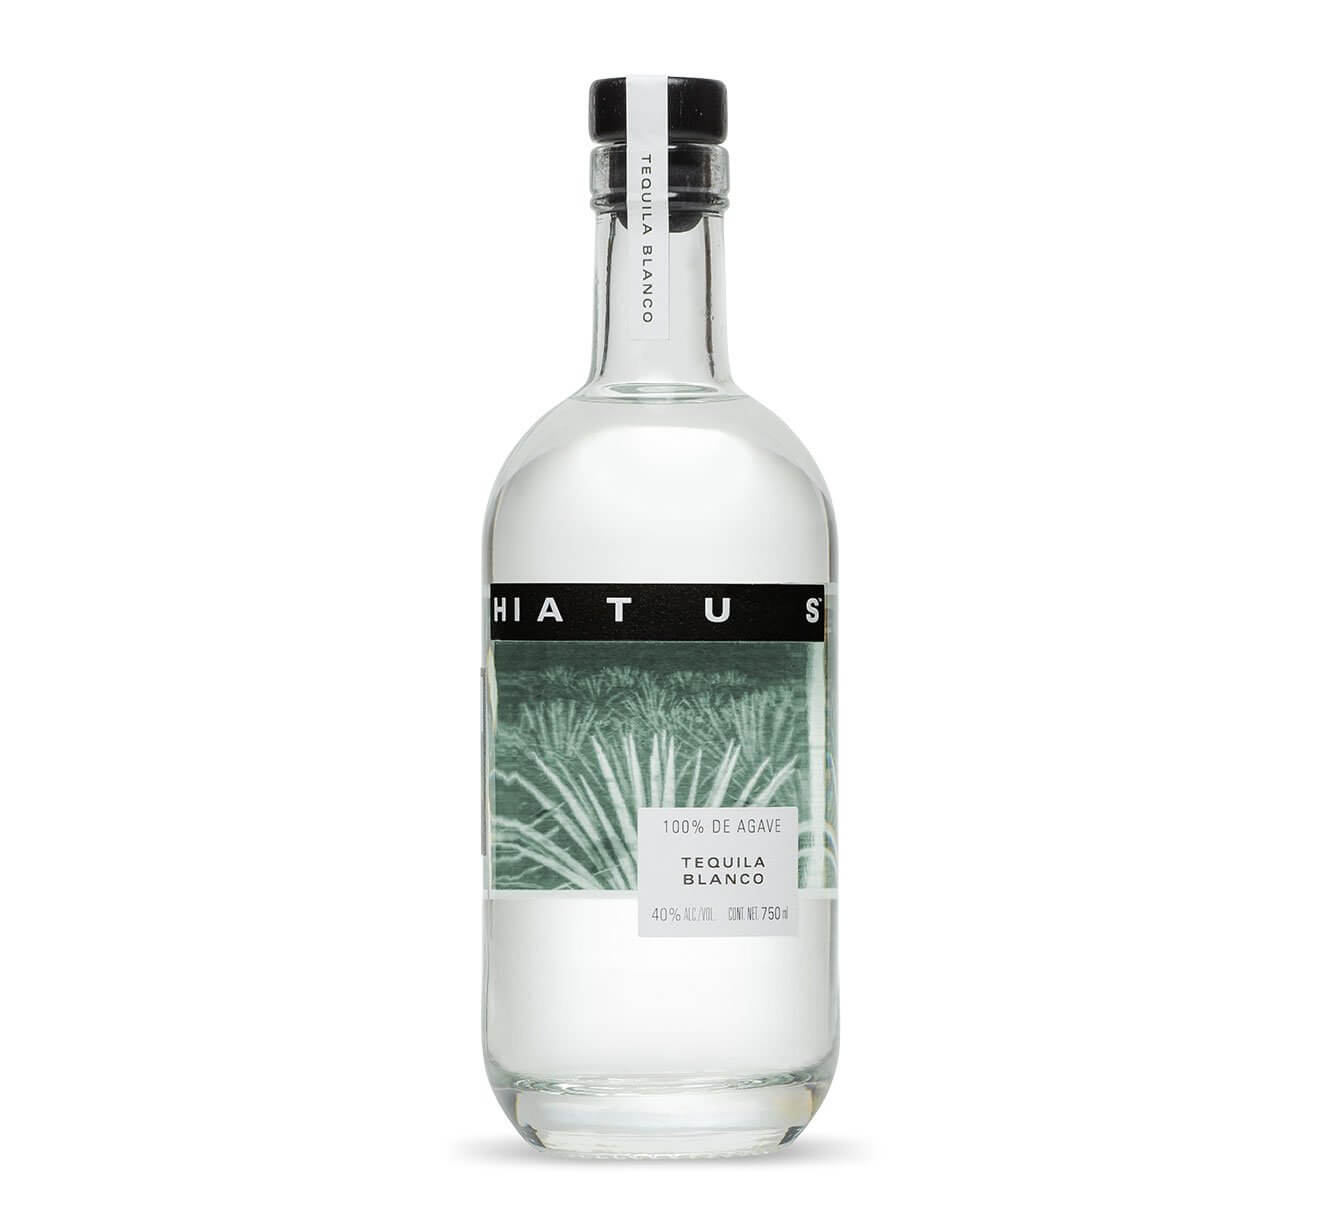 Hiatus Blanco, bottle on white